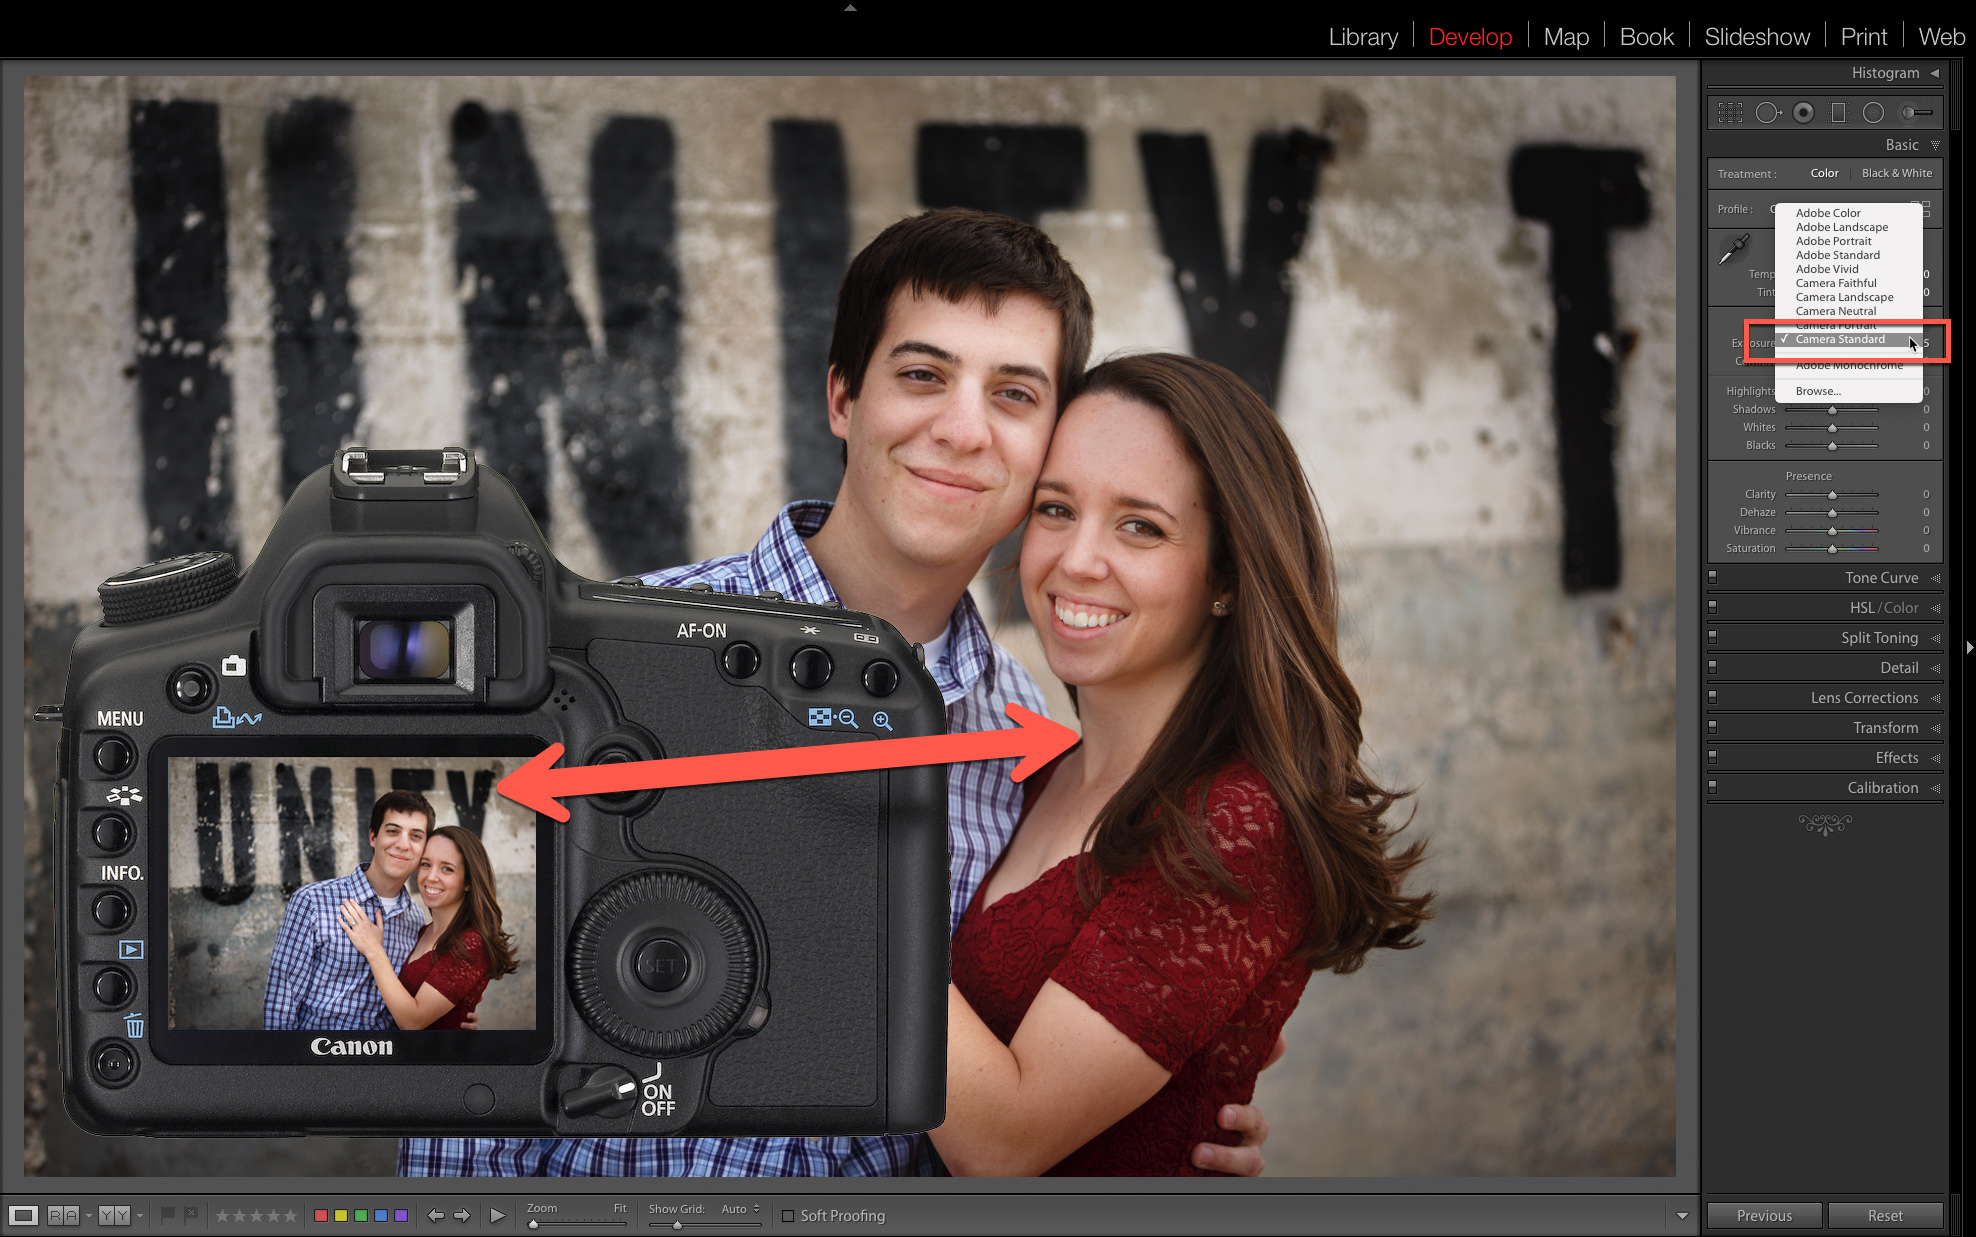 Get the Lightroom Preview to match the image you see on the back of your camera.